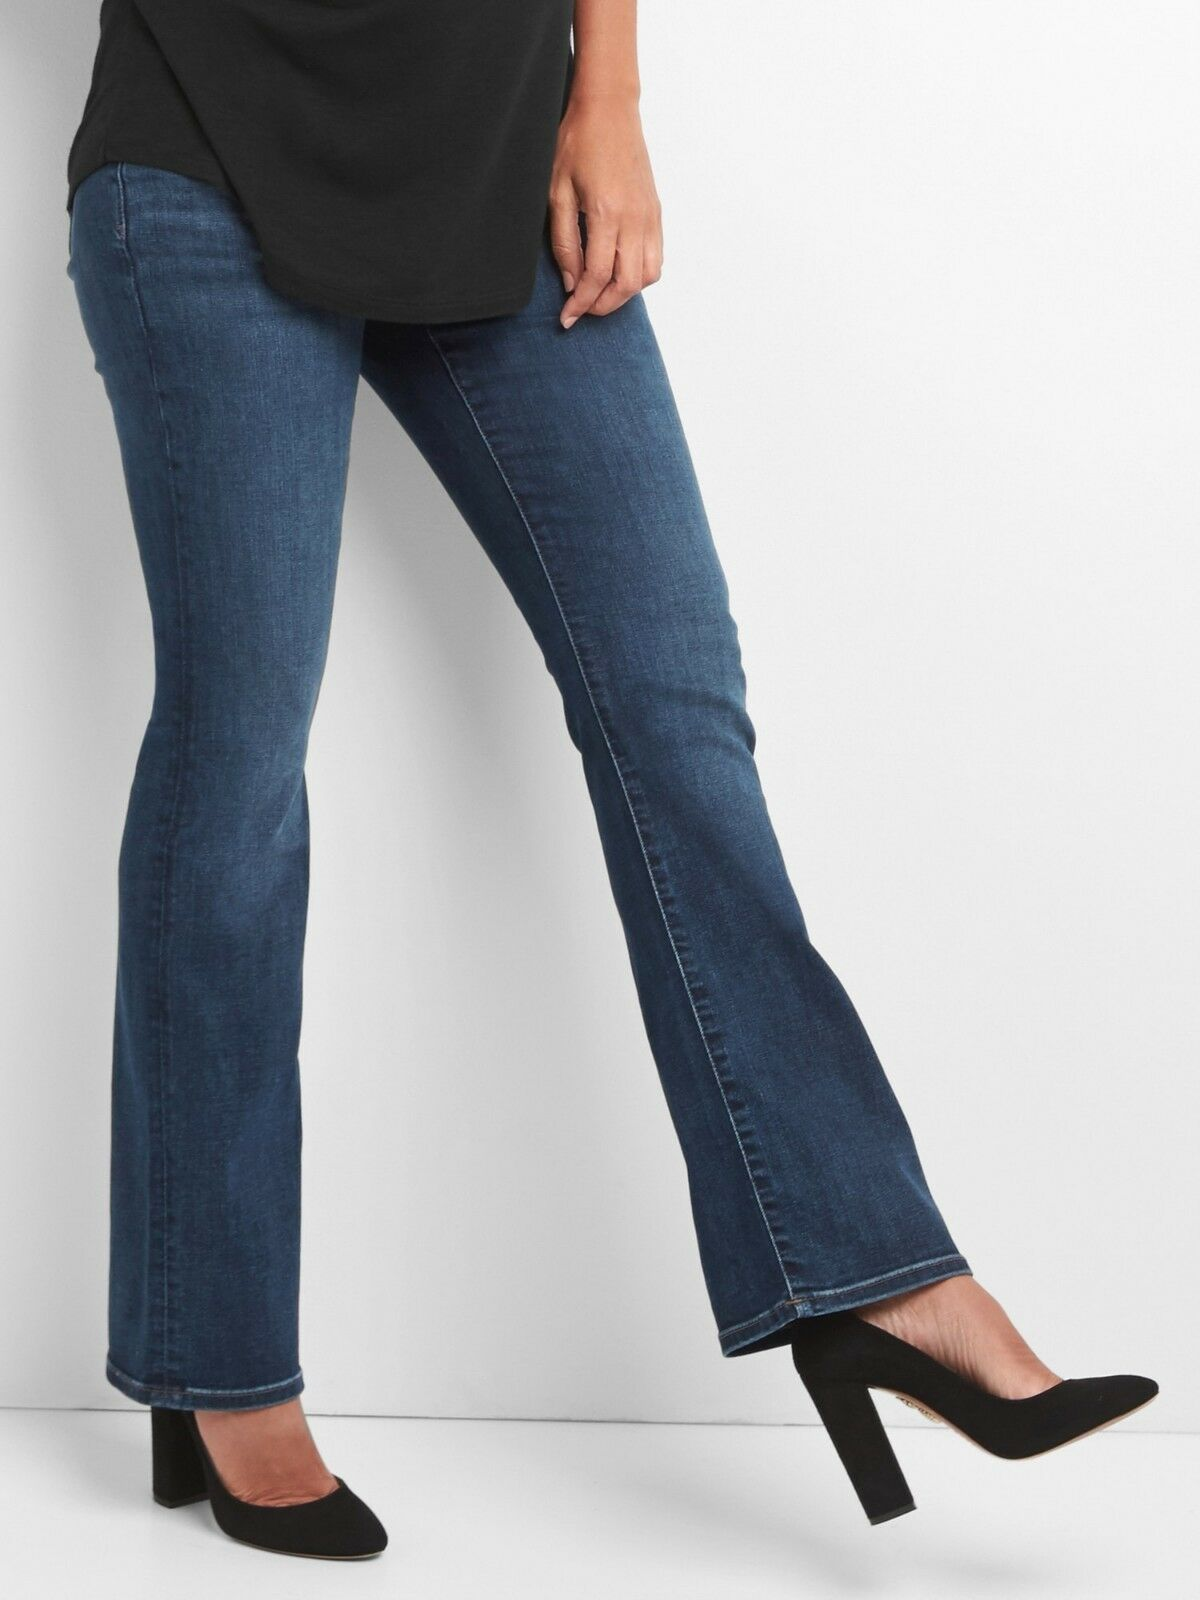 NEW NWT Gap Maternity Demi Panel Baby Perfect Boot Jeans 4  74.95